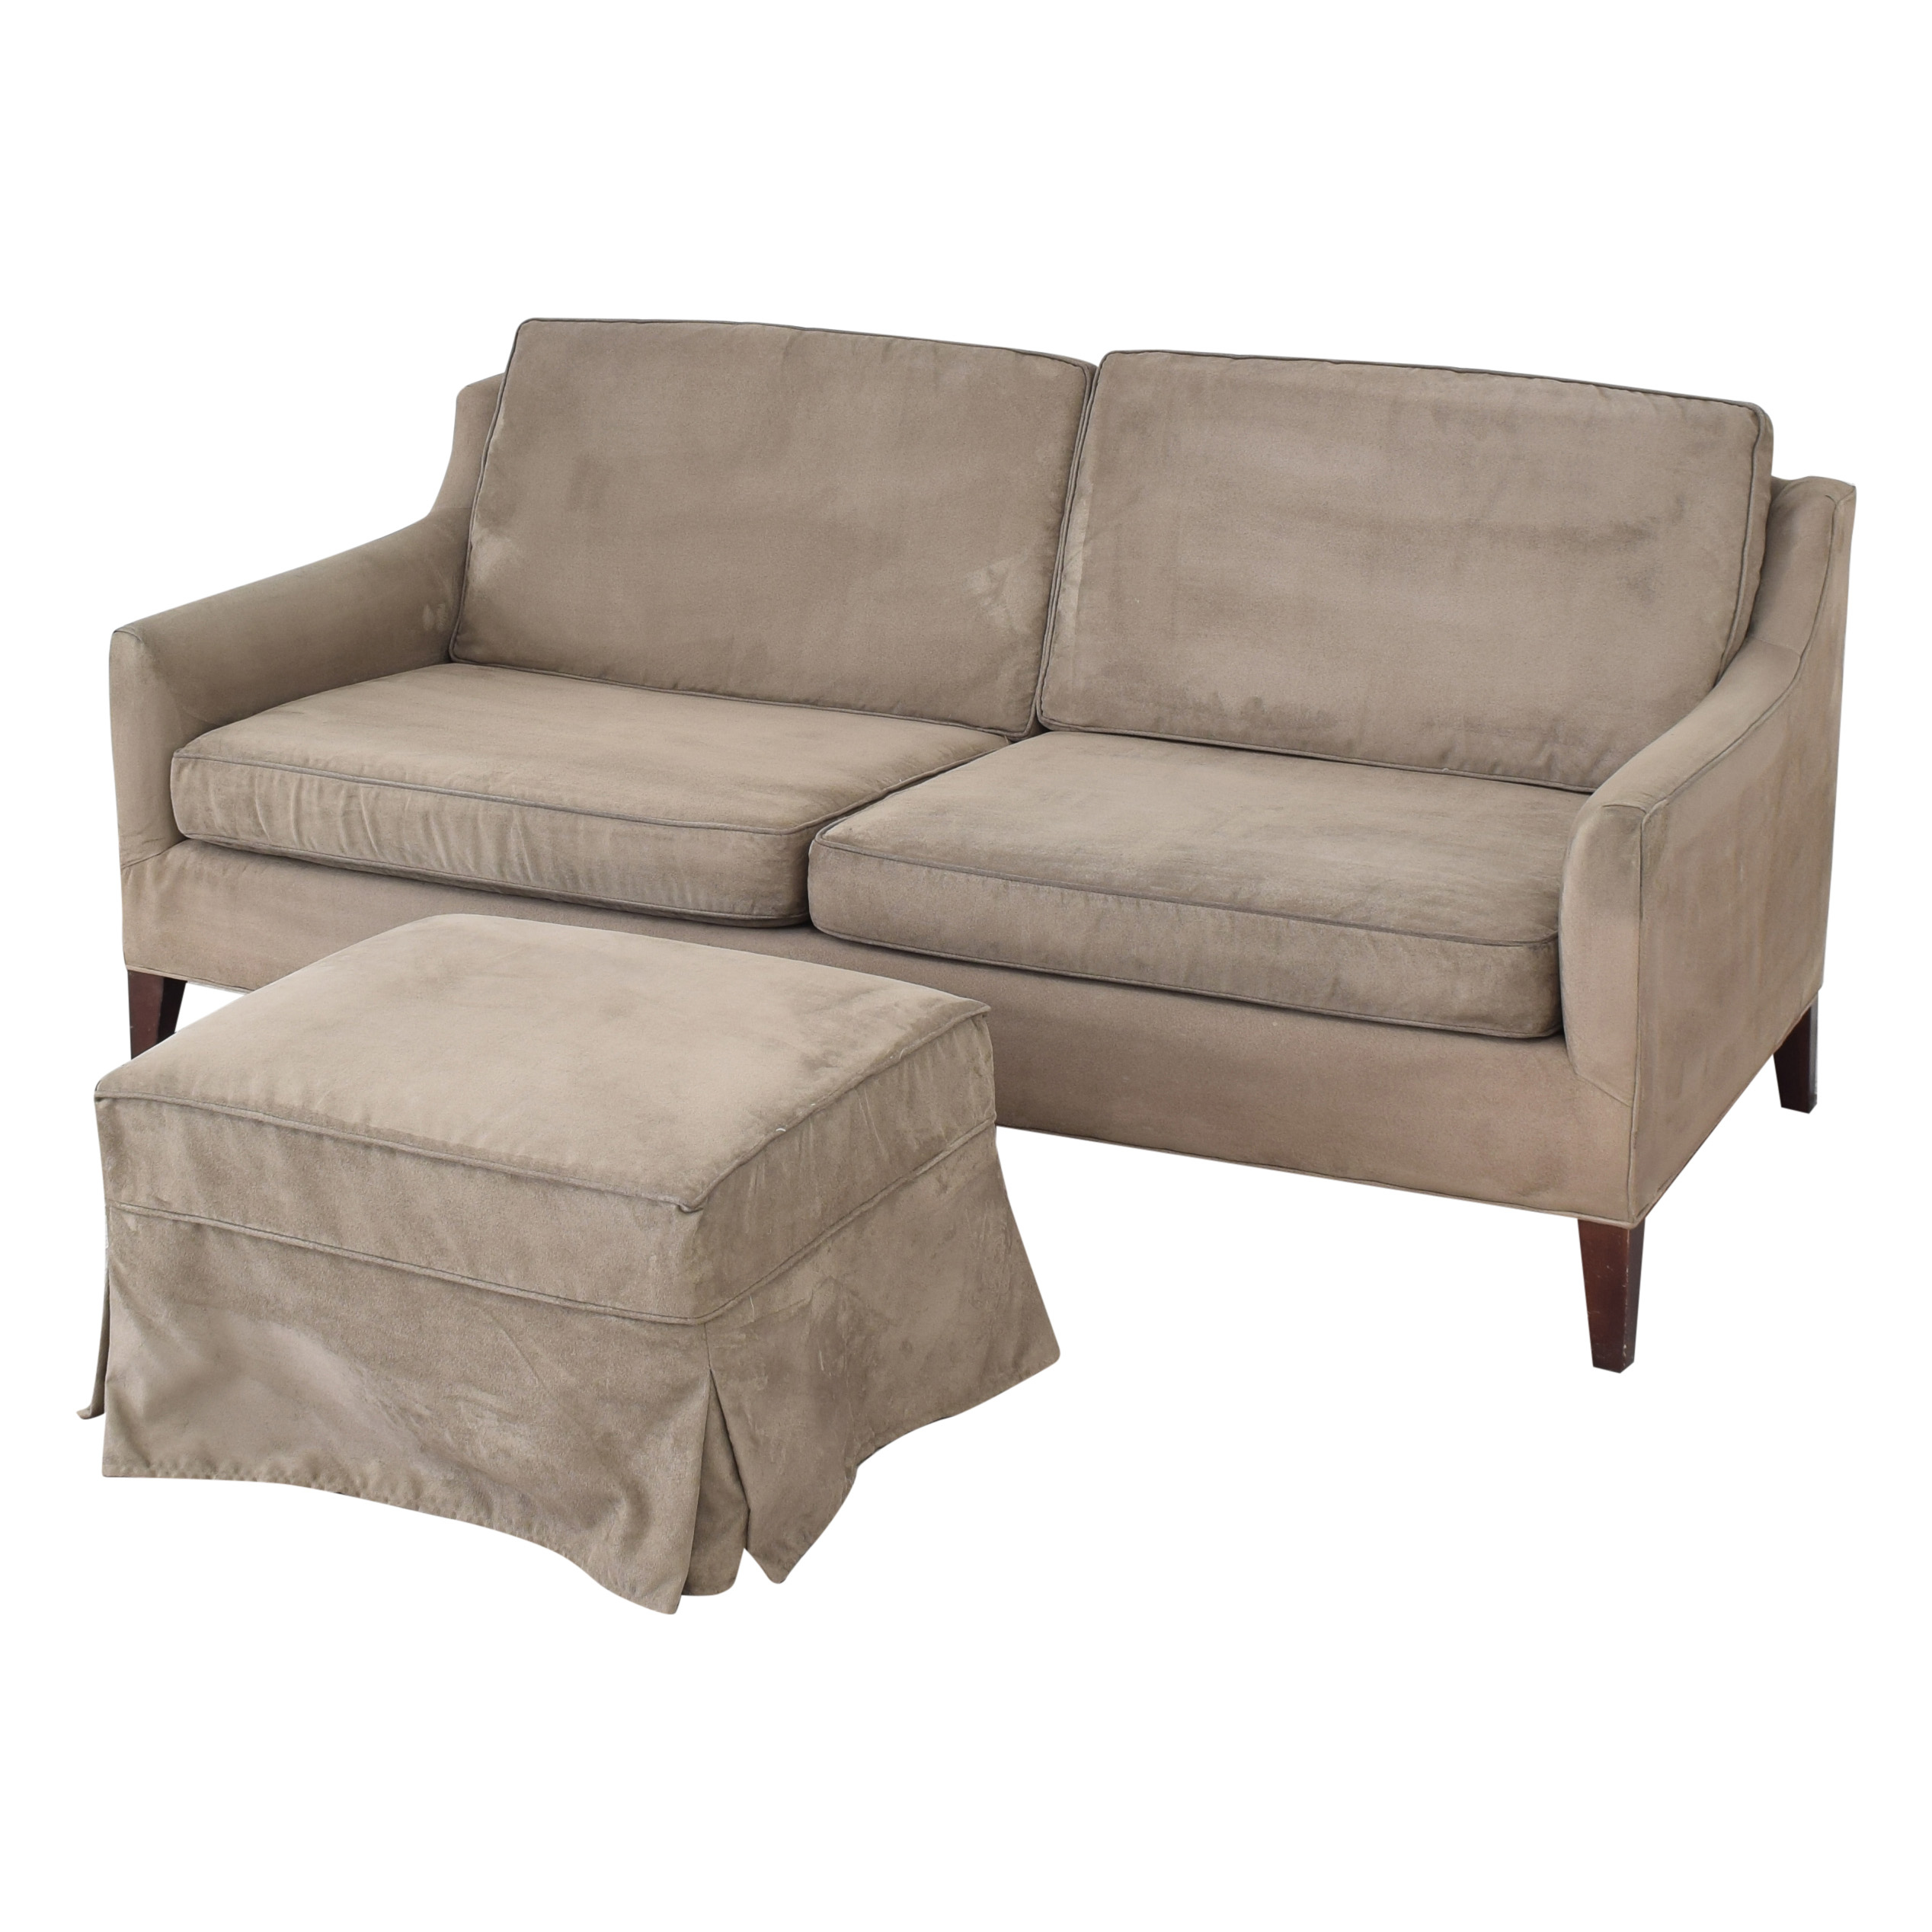 Mitchell Gold + Bob Williams Mitchell Gold + Bob Williams Taylor Apartment Sofa with Ottoman dimensions